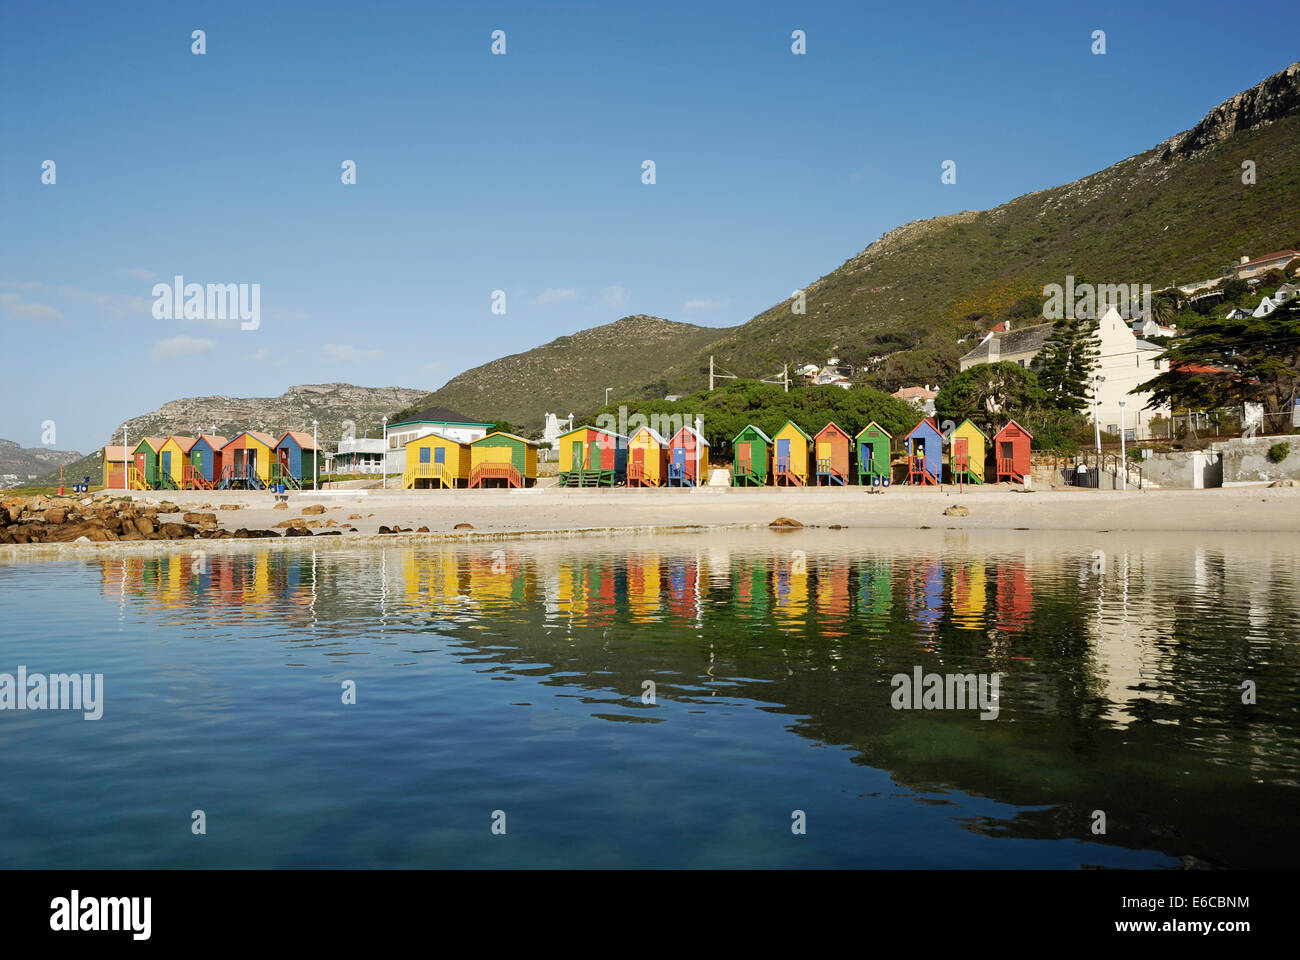 Multicoloured beach huts on St James beach, South Western Cape, South Africa - Stock Image